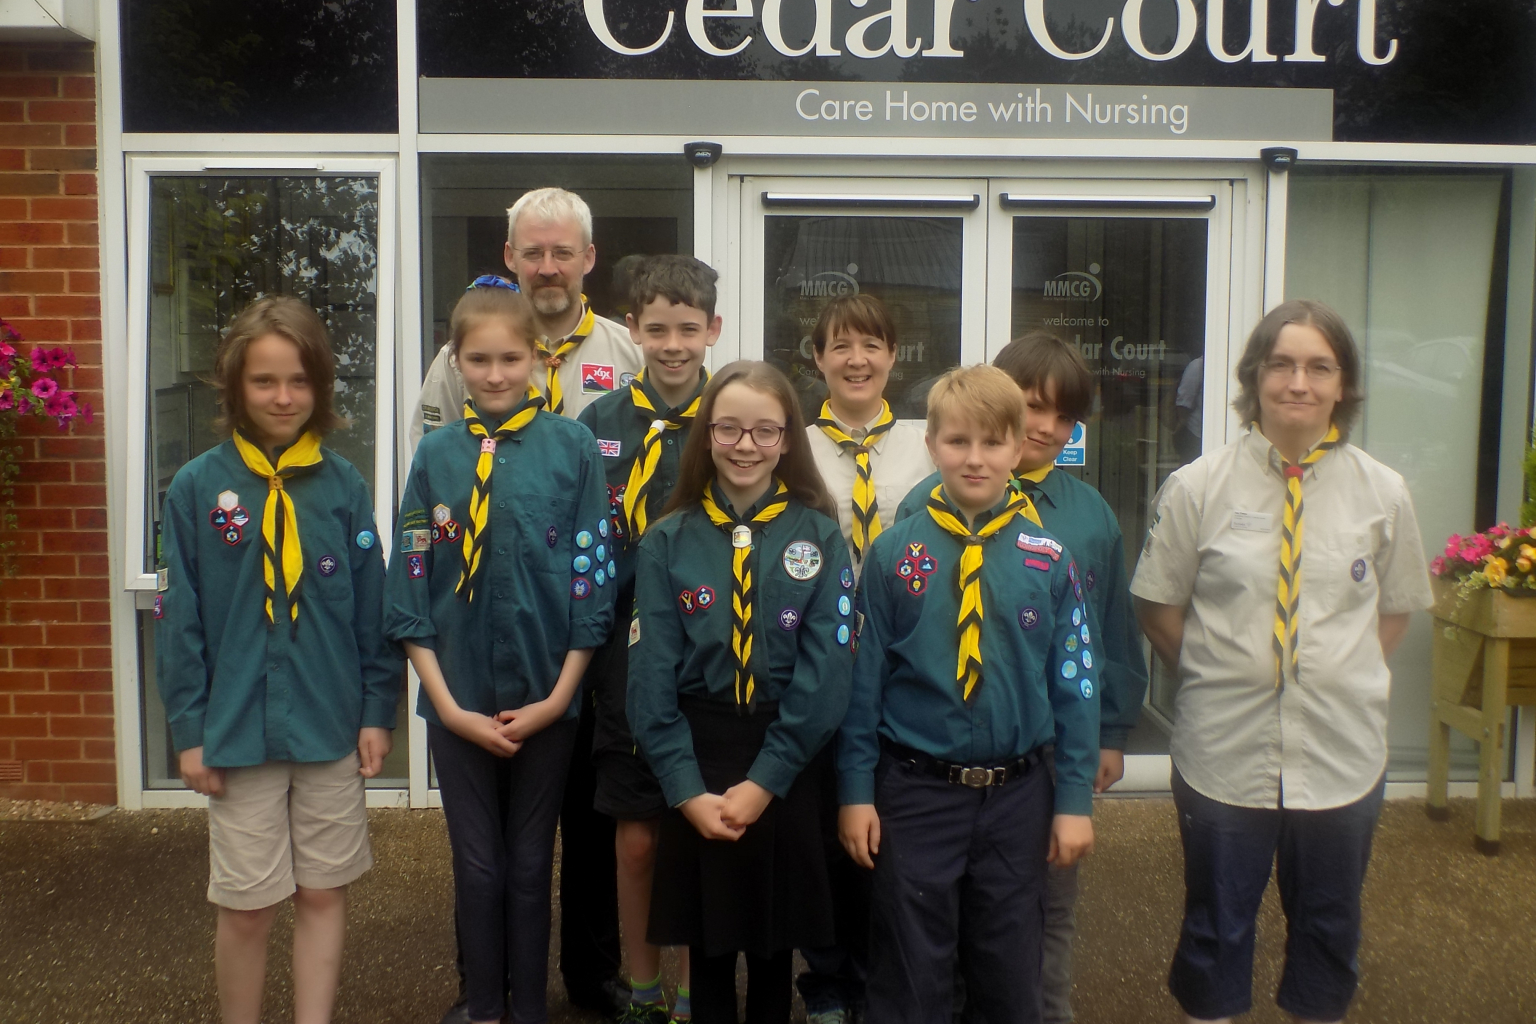 Cranleigh Scouts and staff members pictured outside of Cedar Court